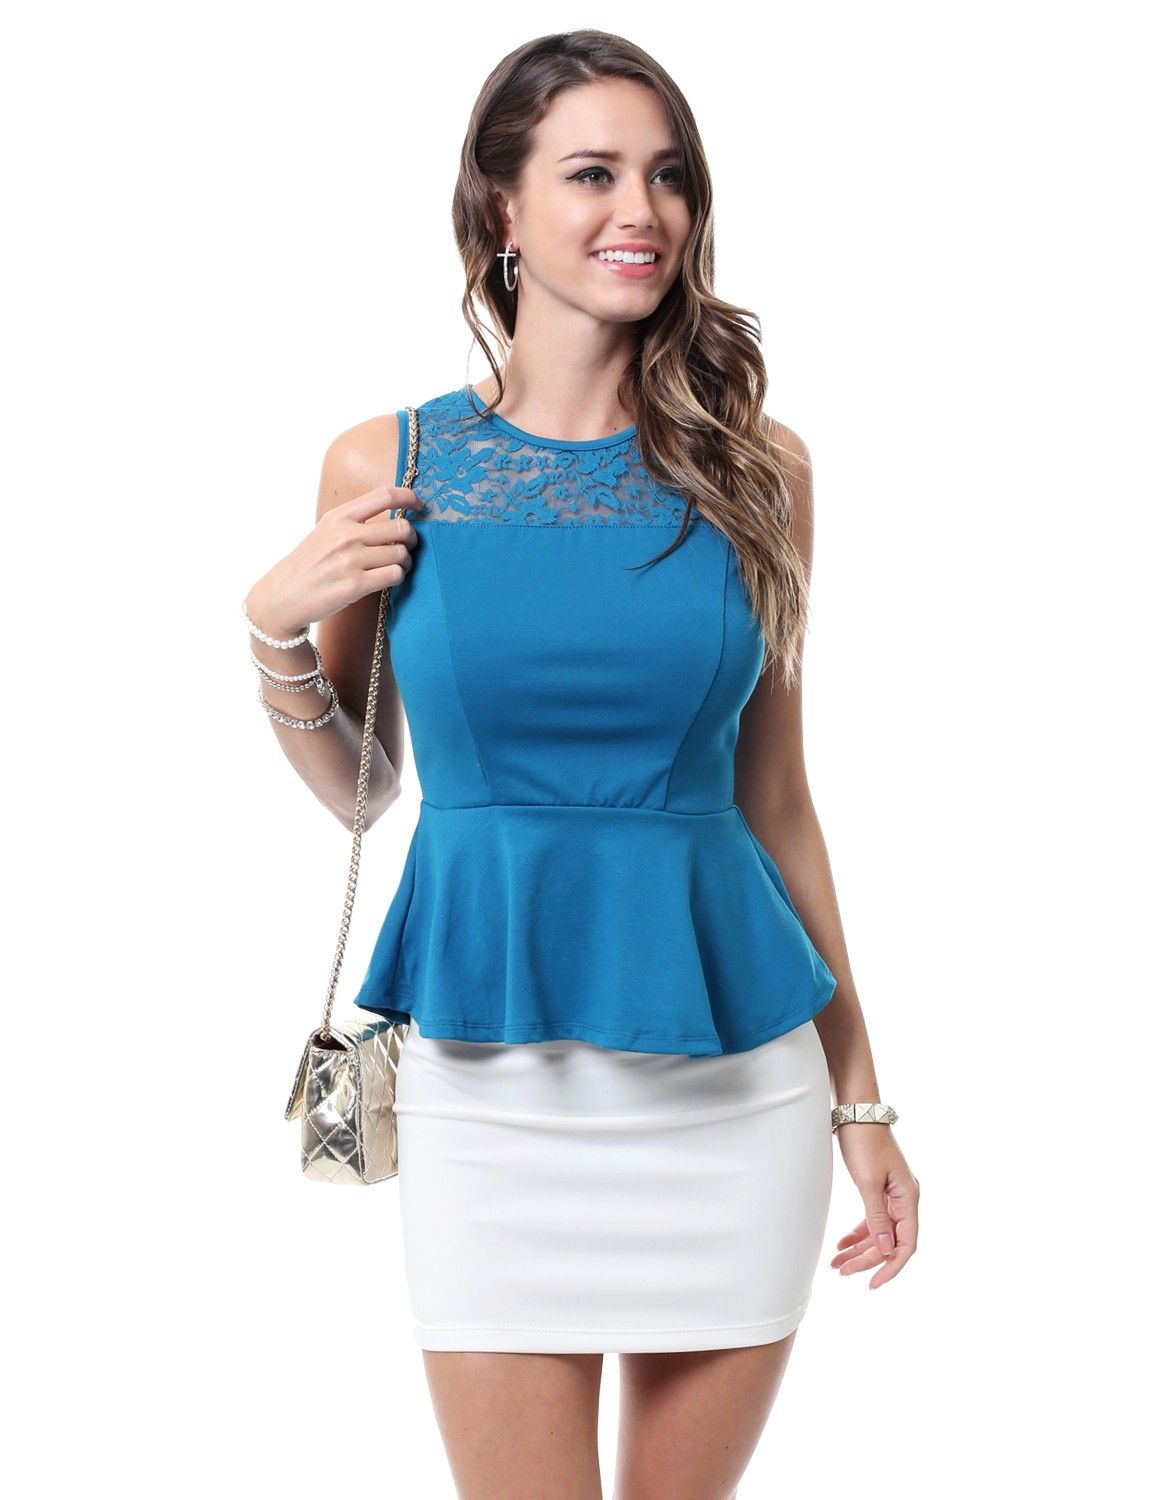 Elegant Sleeveless Peplum Top With Floral Lace Top #11foxy